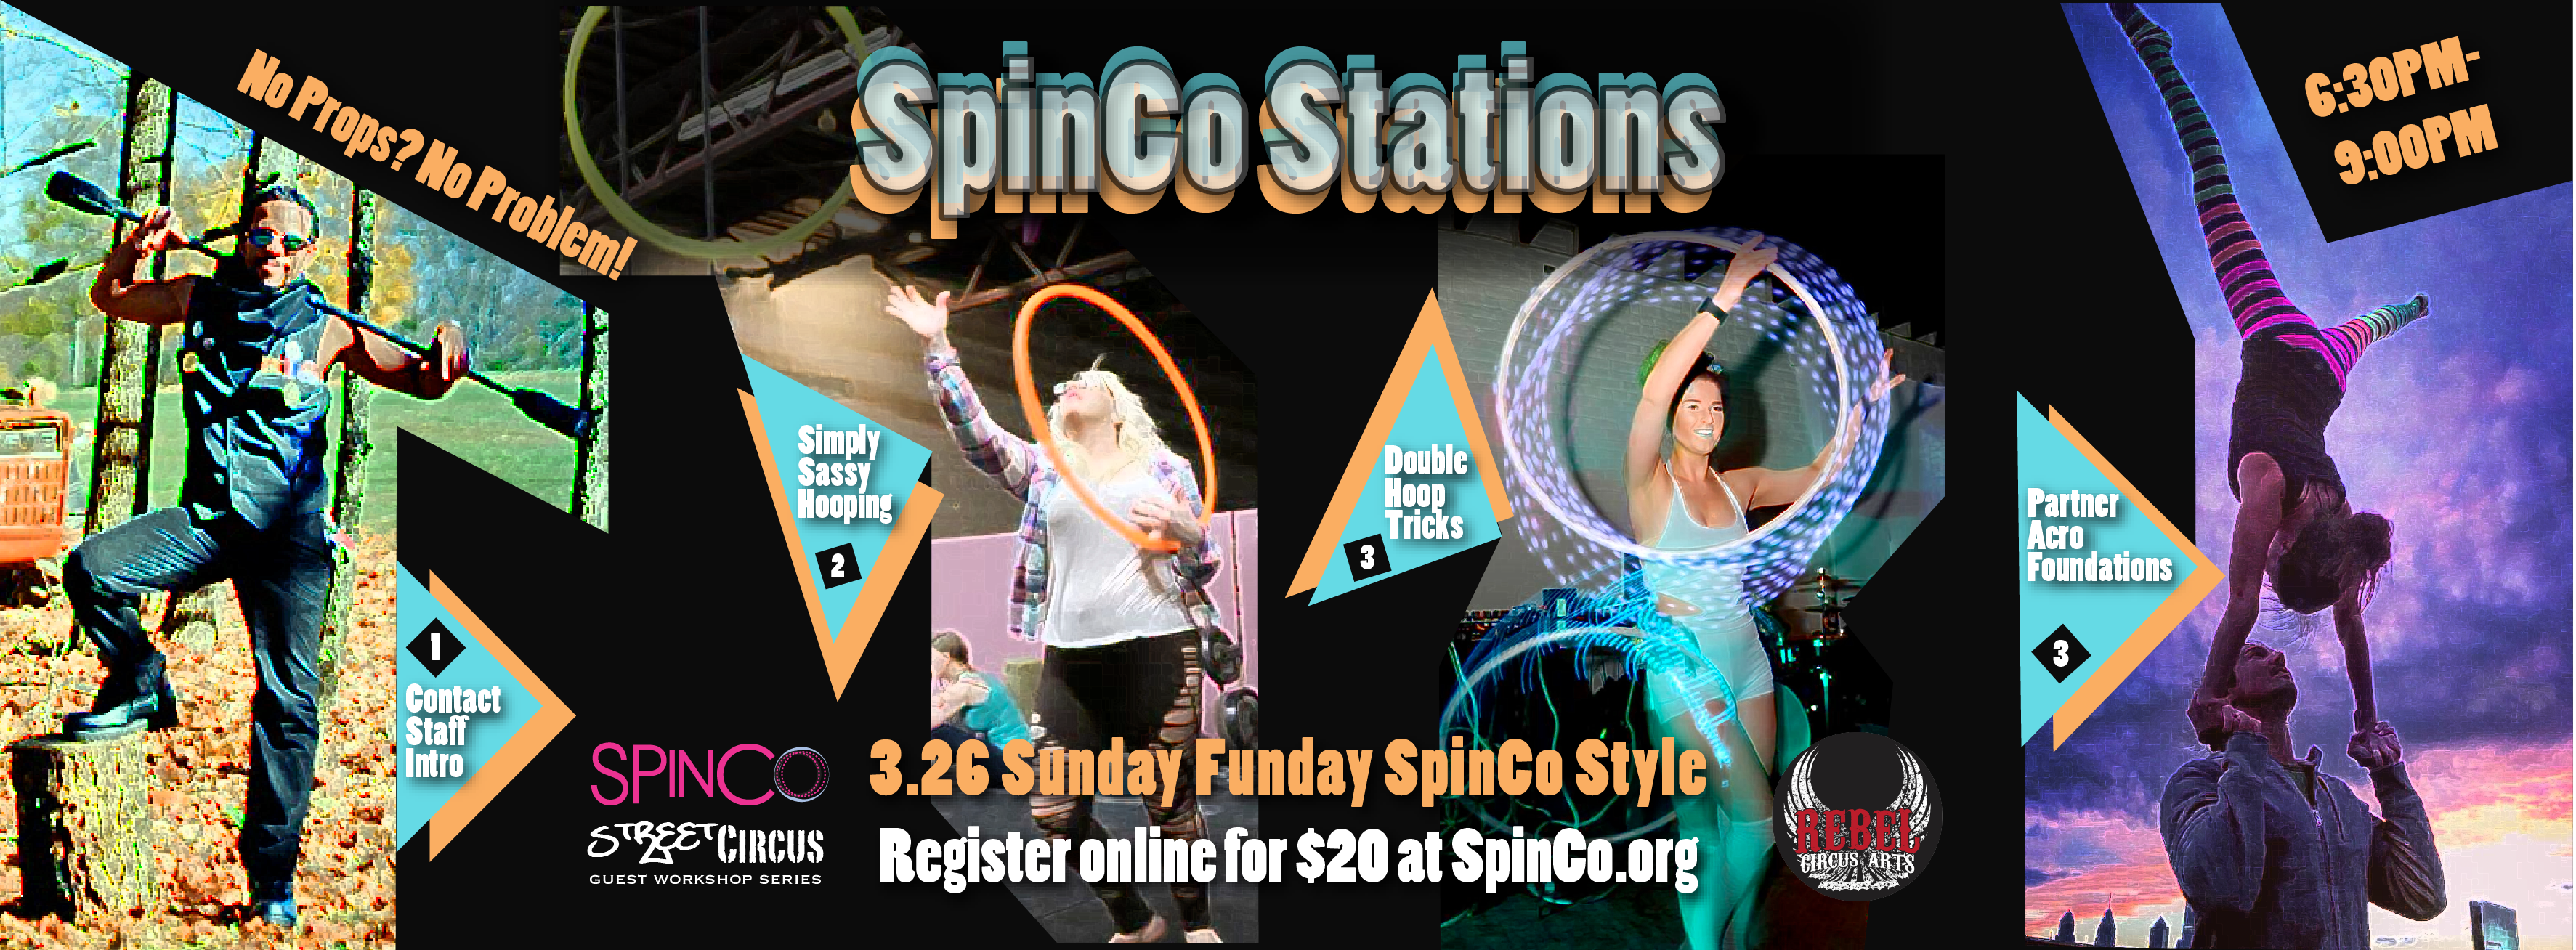 Fb Flyer Spin Co Stations March 2017 01